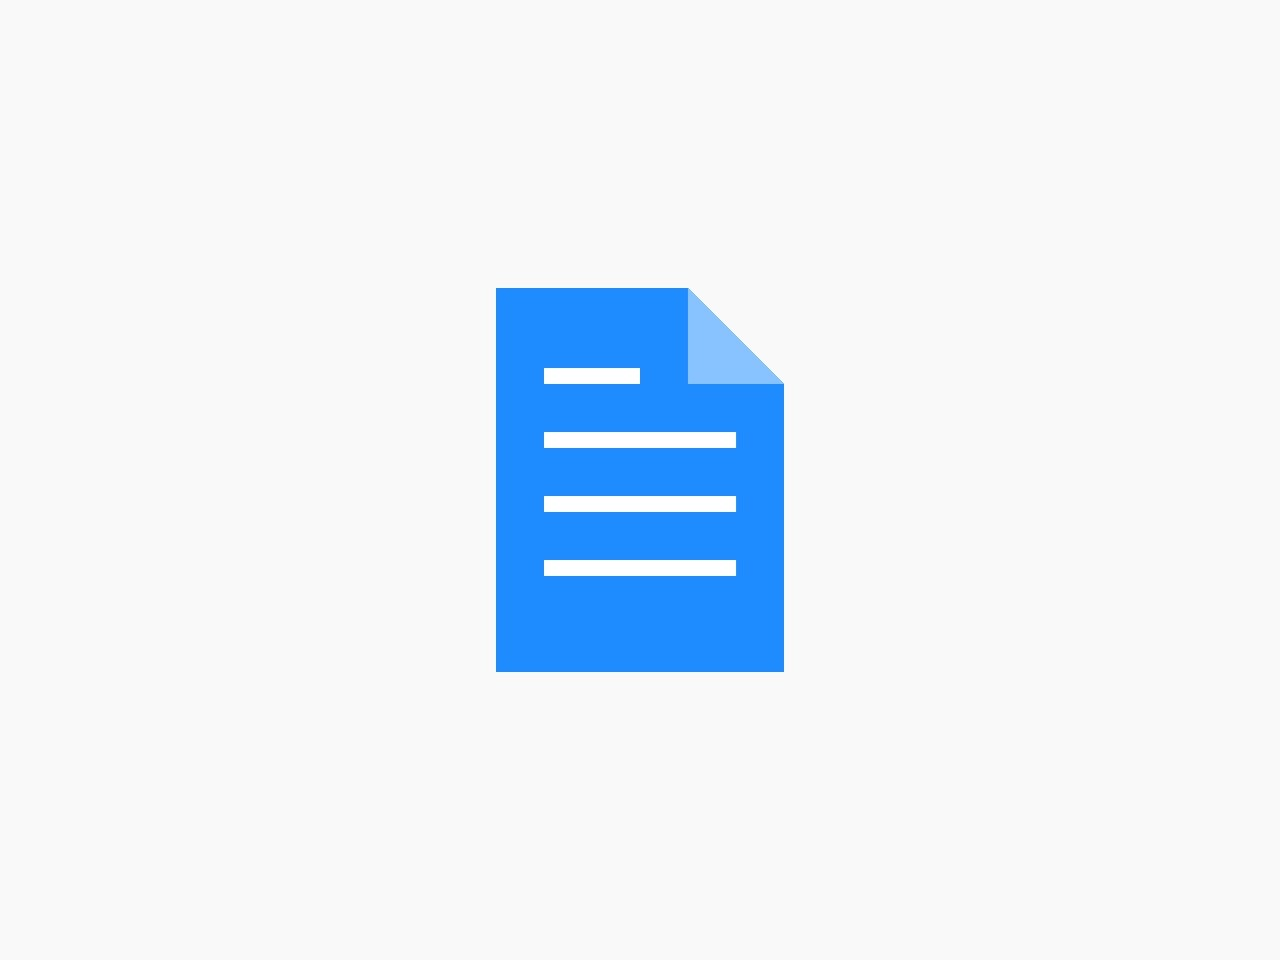 Blanket Coverage: Teams should take after Panthers GM's shrewd move